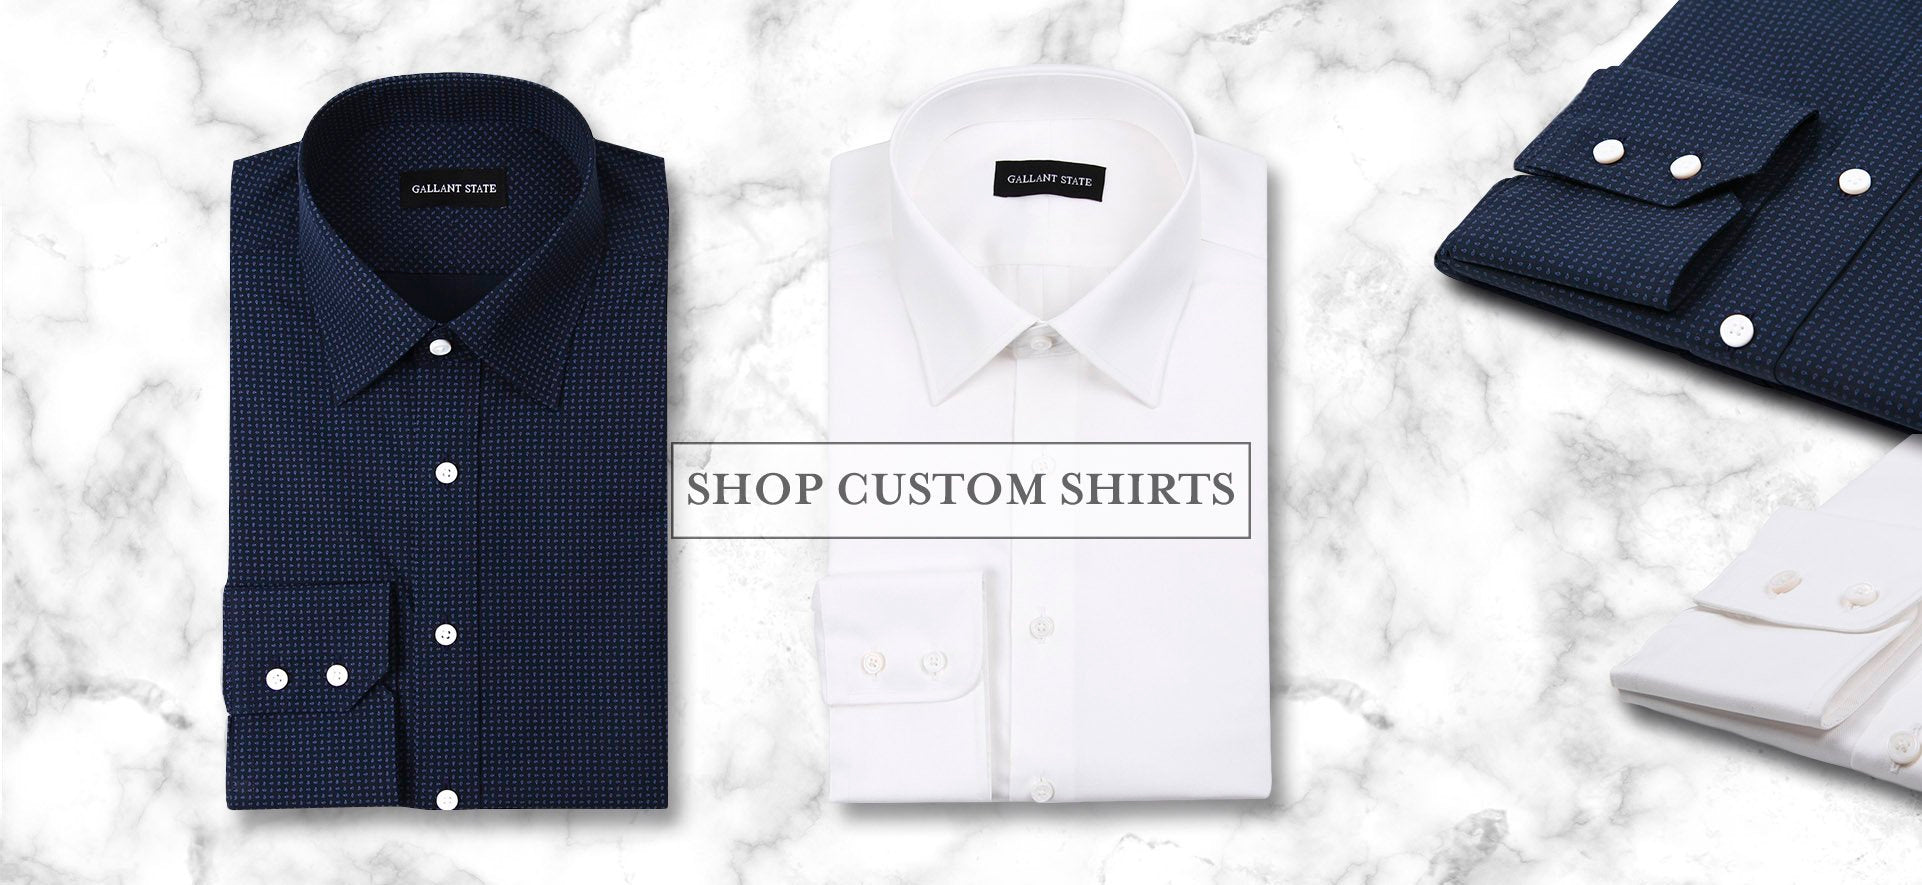 Gallant State Custom Shirts - Make Your Shirt